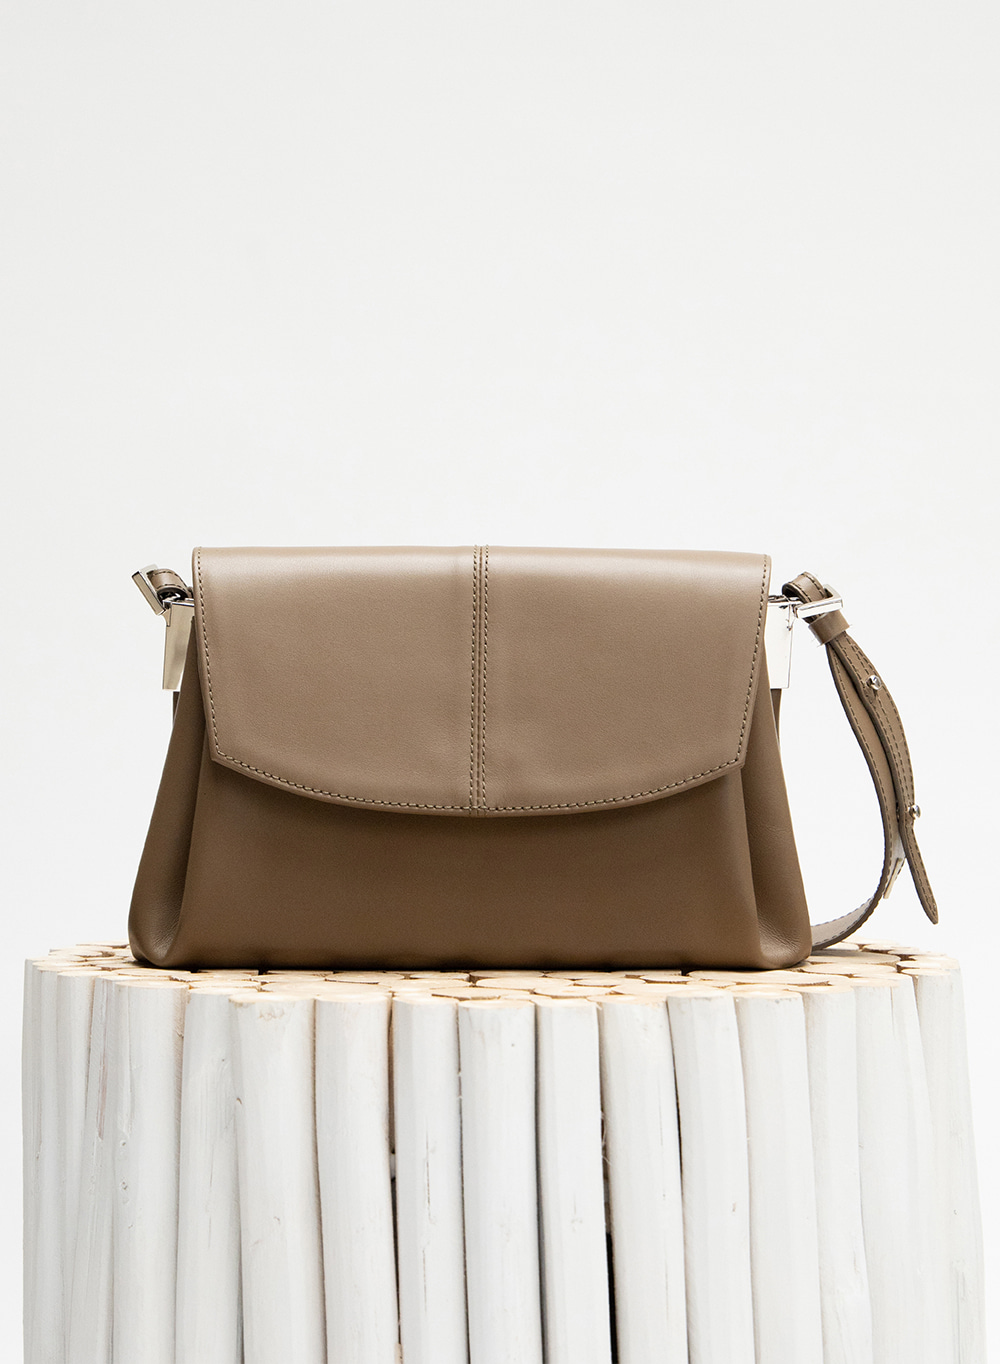 FW20 레이아 Leia Pleats Bag Khaki